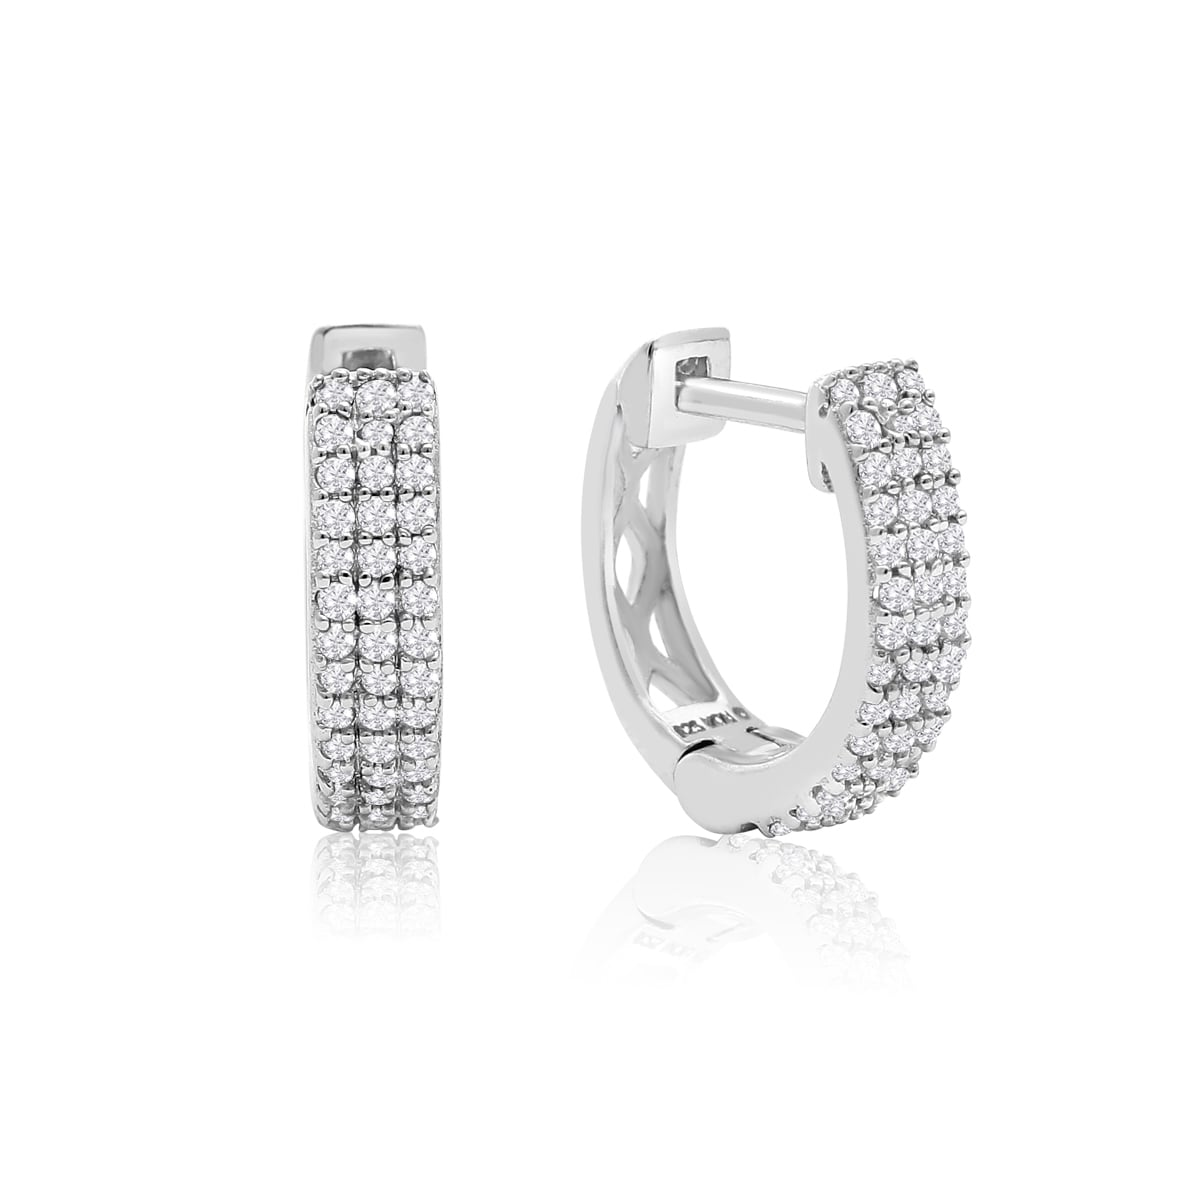 Sterling Silver 1 4ct Tdw Diamond Hoop Earrings 2 Inch Free Shipping Today 12215485